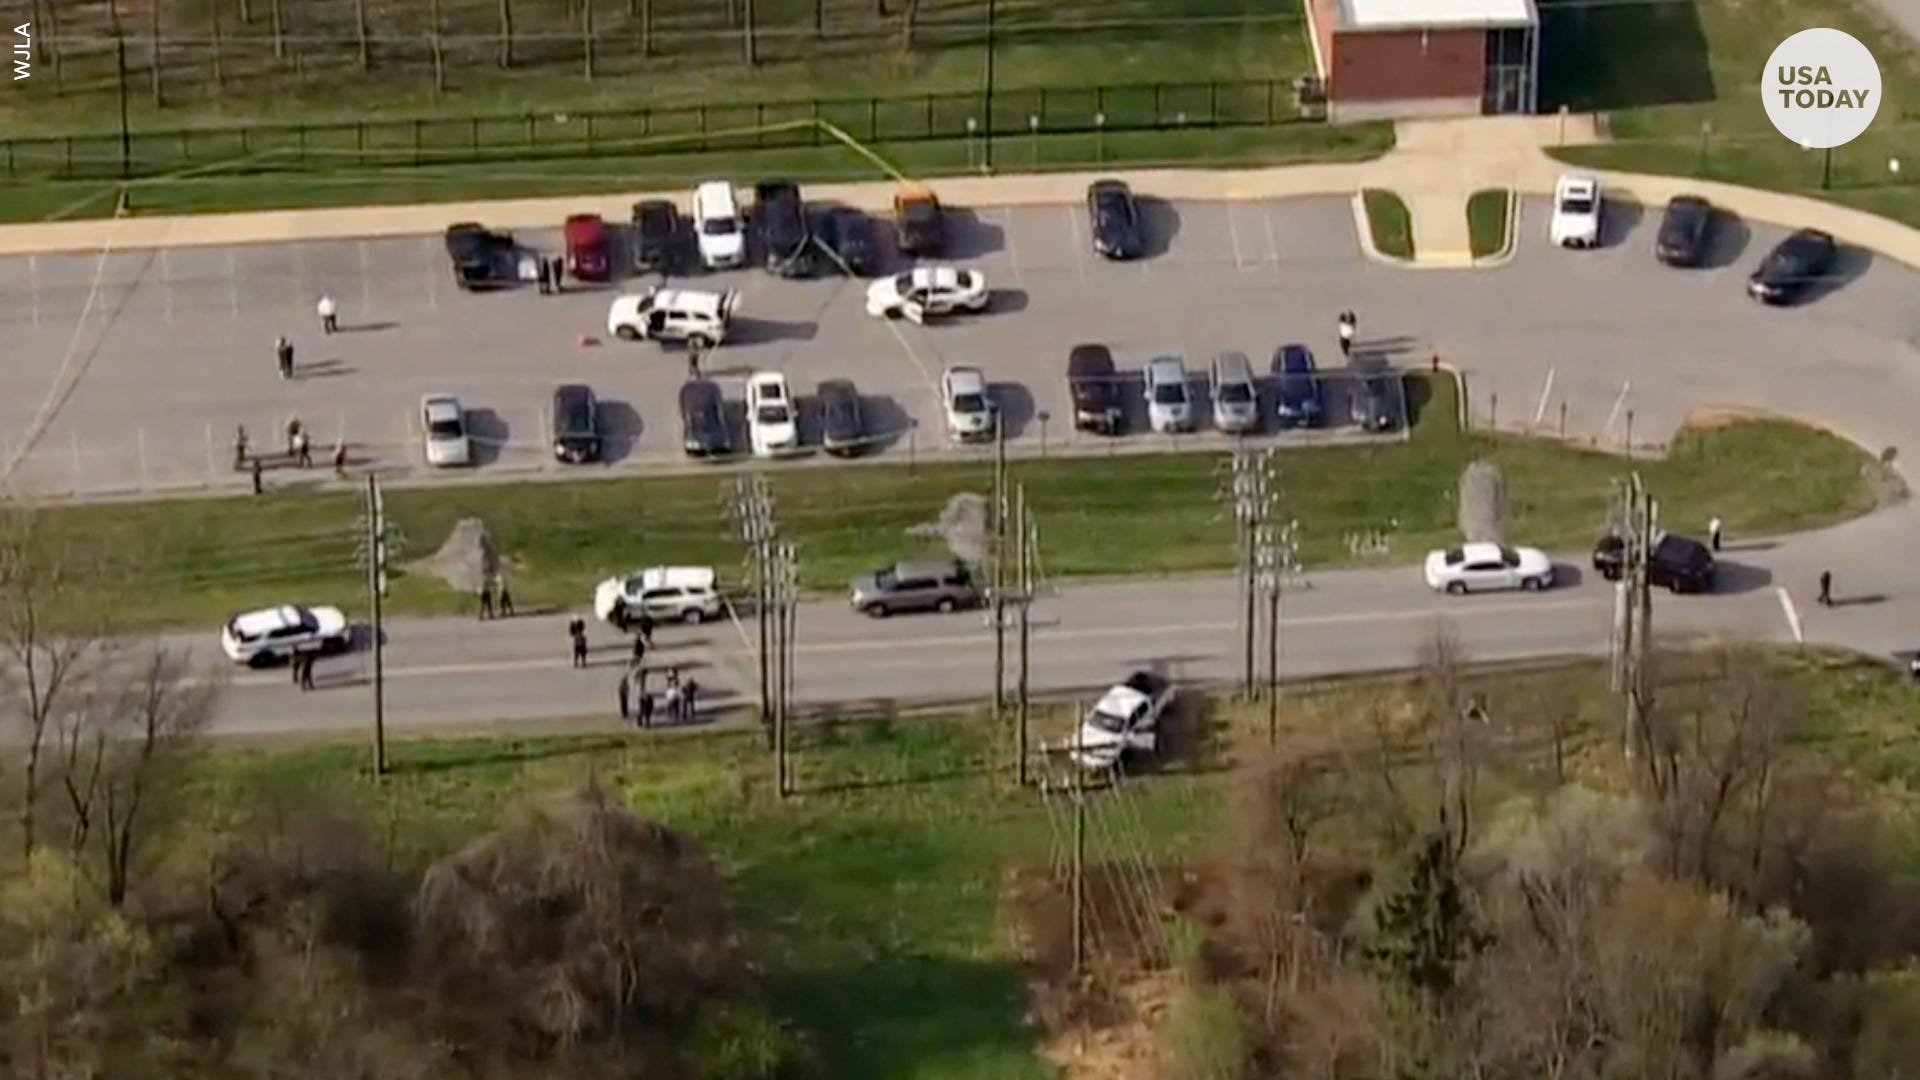 Suspect shot dead at military base after shooting two people in Maryland